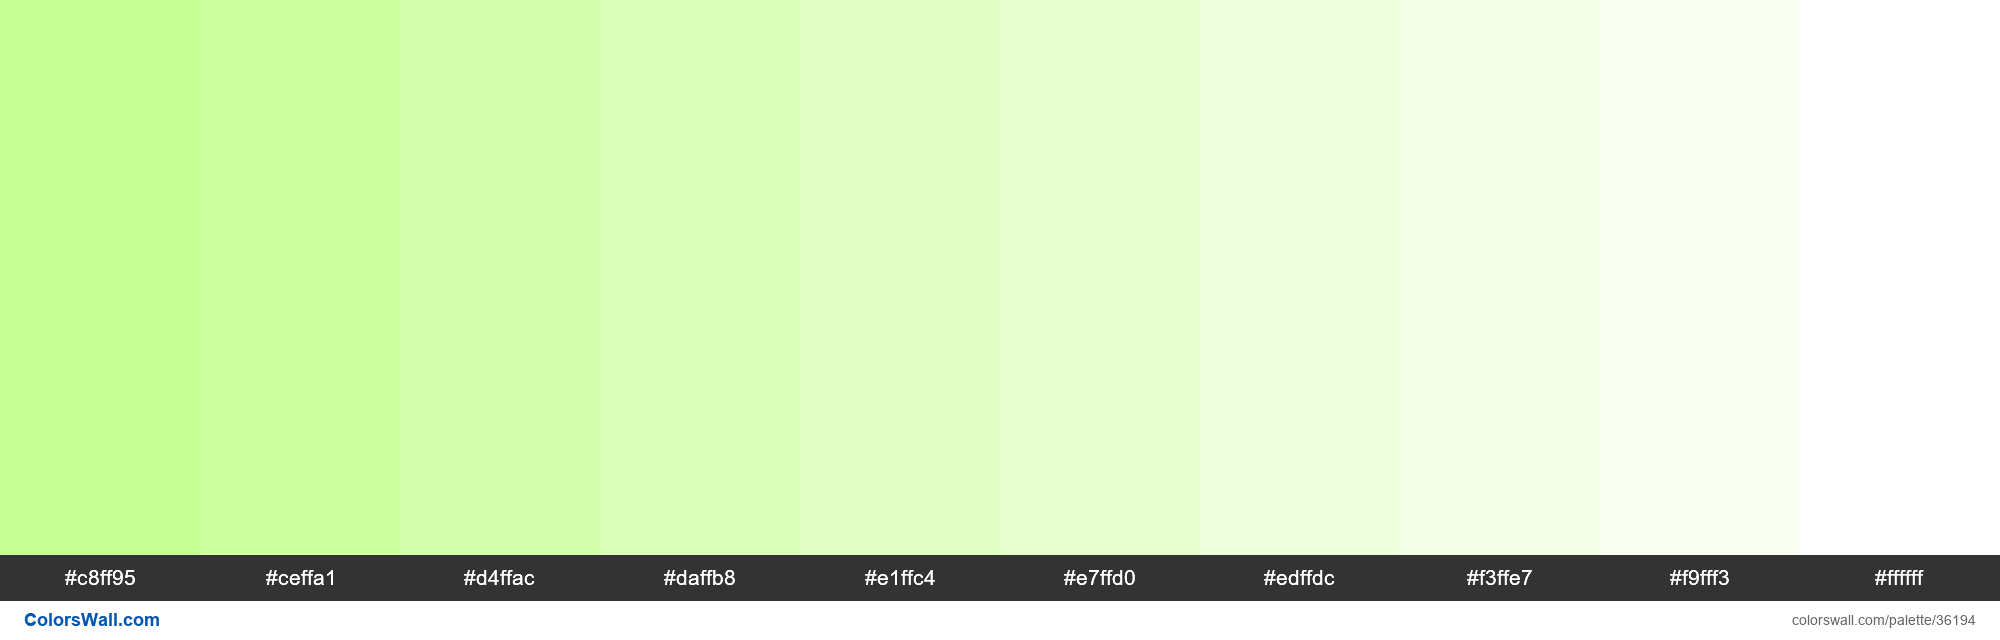 Tints XKCD Color light yellowish green #c2ff89 hex - #36194